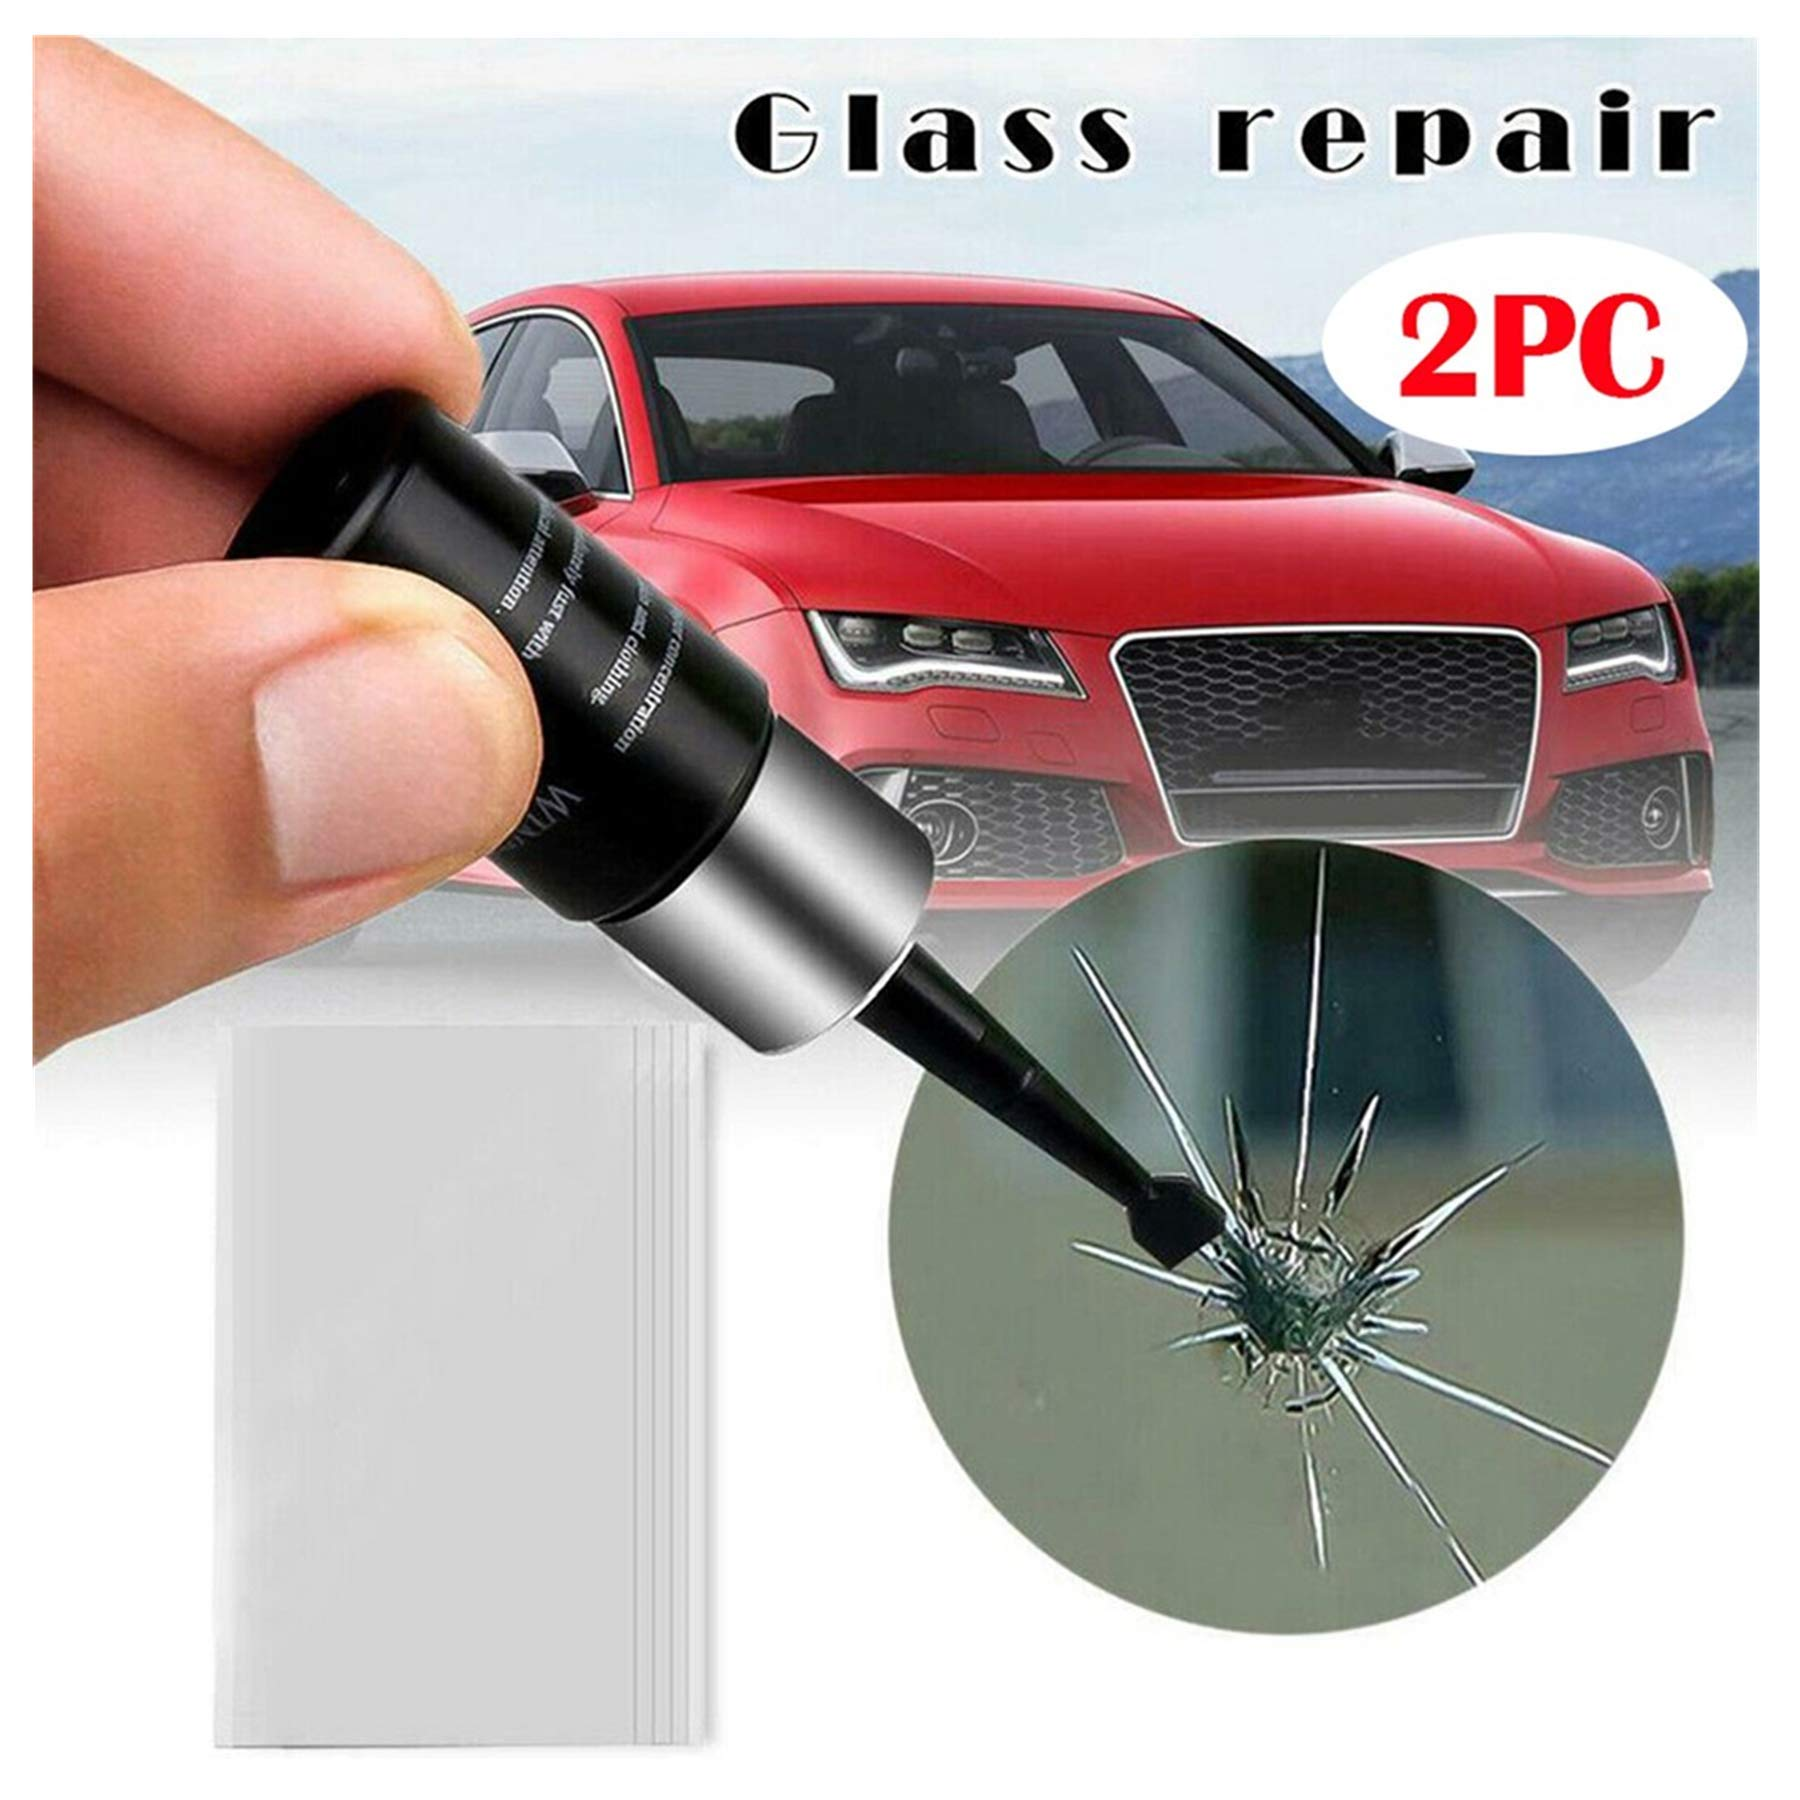 Wiper Blade Damage Tree Sap Water Damage//Suitable for Any Type of Glass Glass Polish GP23015 DIY Car Glass and Windshield Scratch Removal kit//xNet System//Removes: Scratches